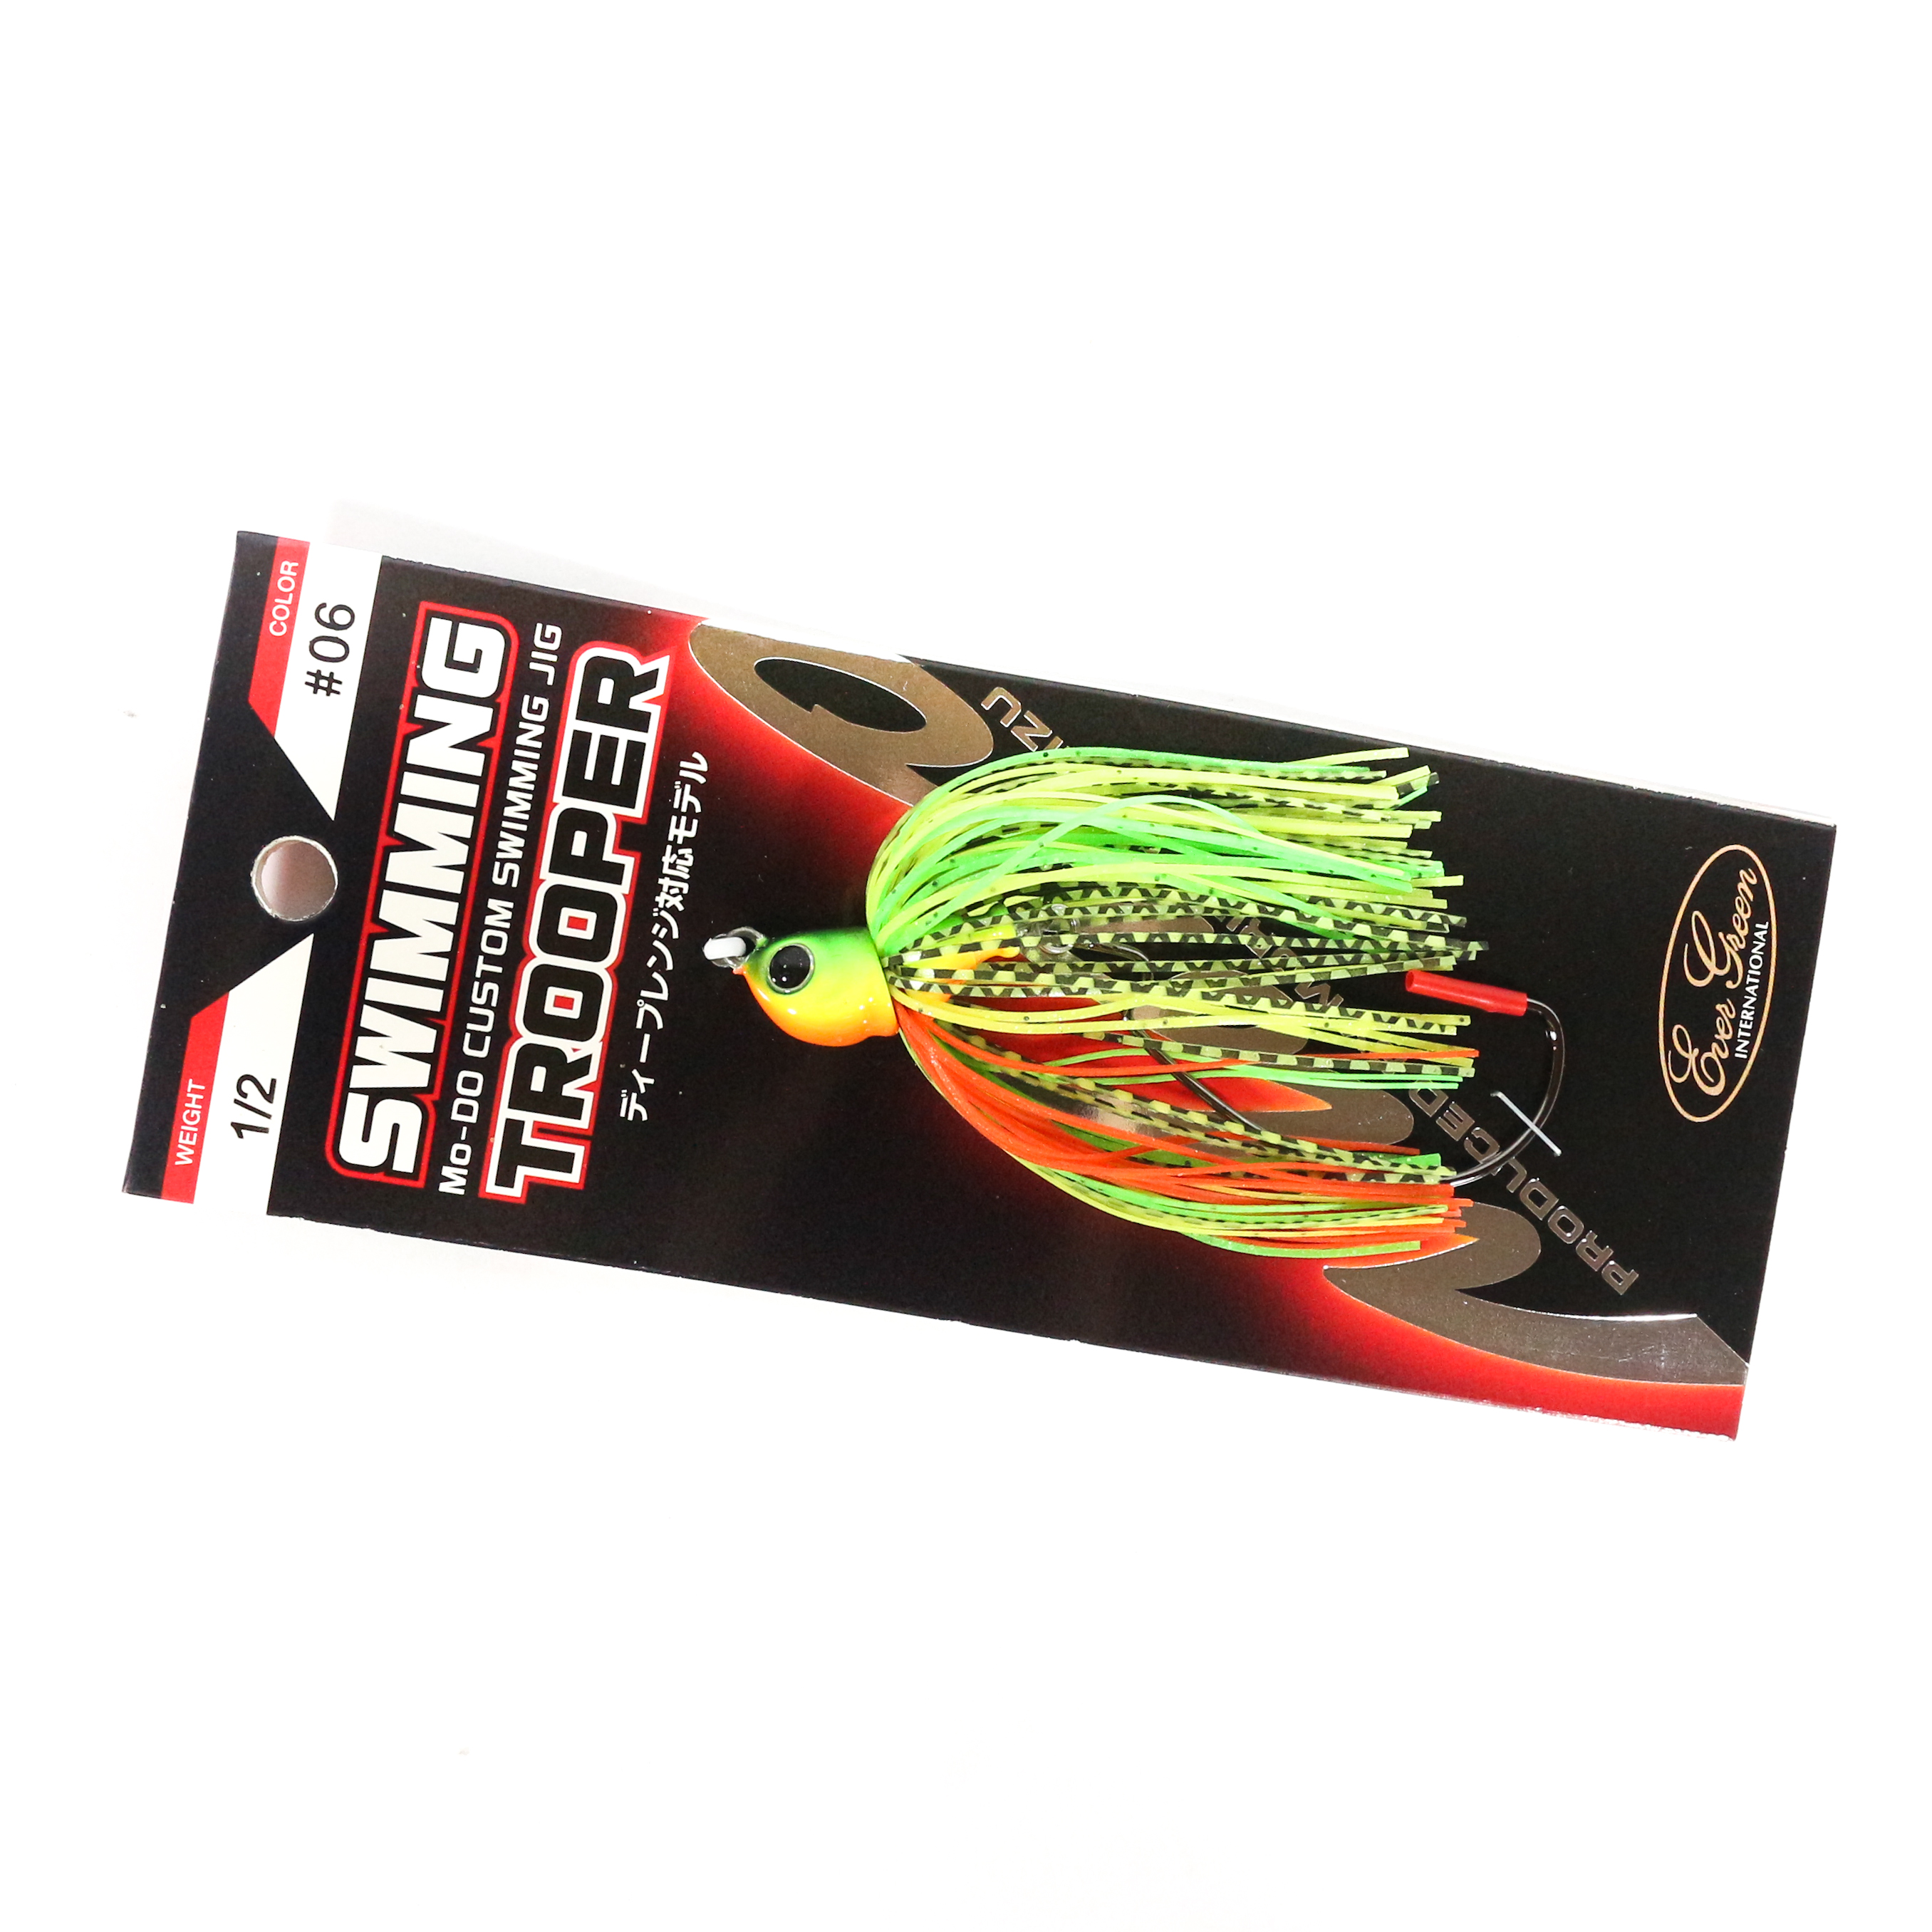 Evergreen Swimming Trooper Rubber Jig 1/2 oz Sinking Lure 06 (0119)